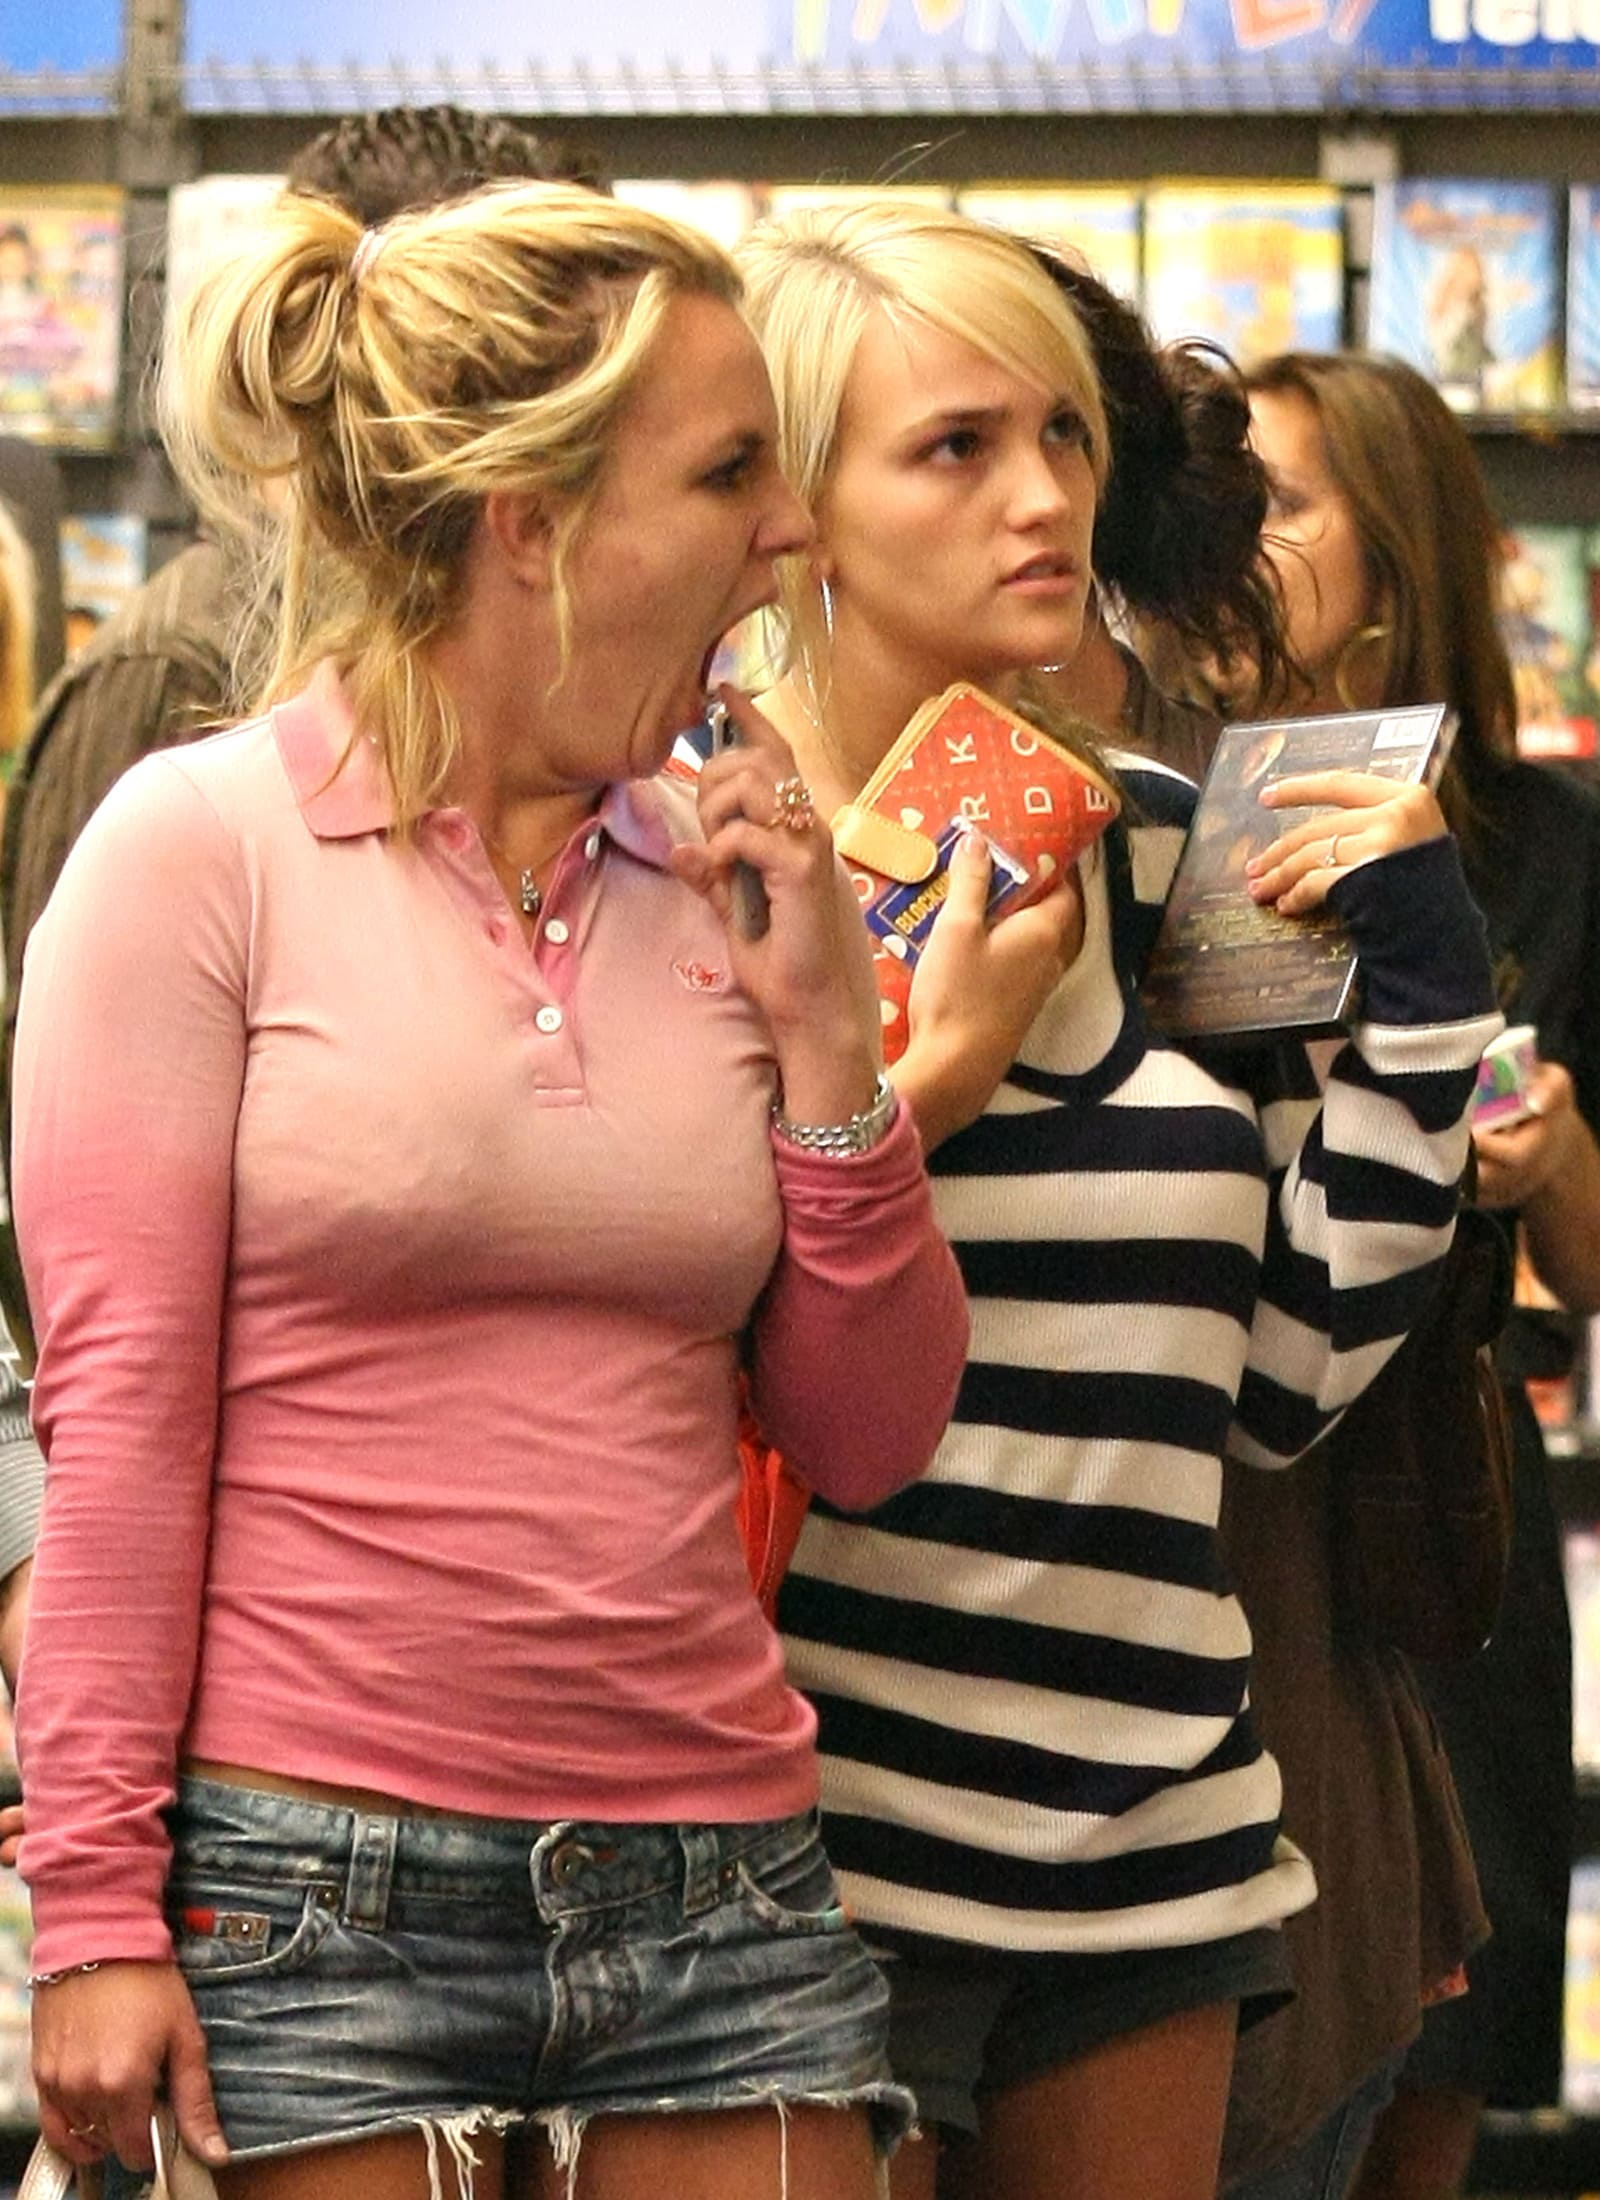 Jamie Lynn Spears Gossip Of The Day Casey Aldridge Not The Father Nickelodeon Executive Might Be The Hollywood Gossip